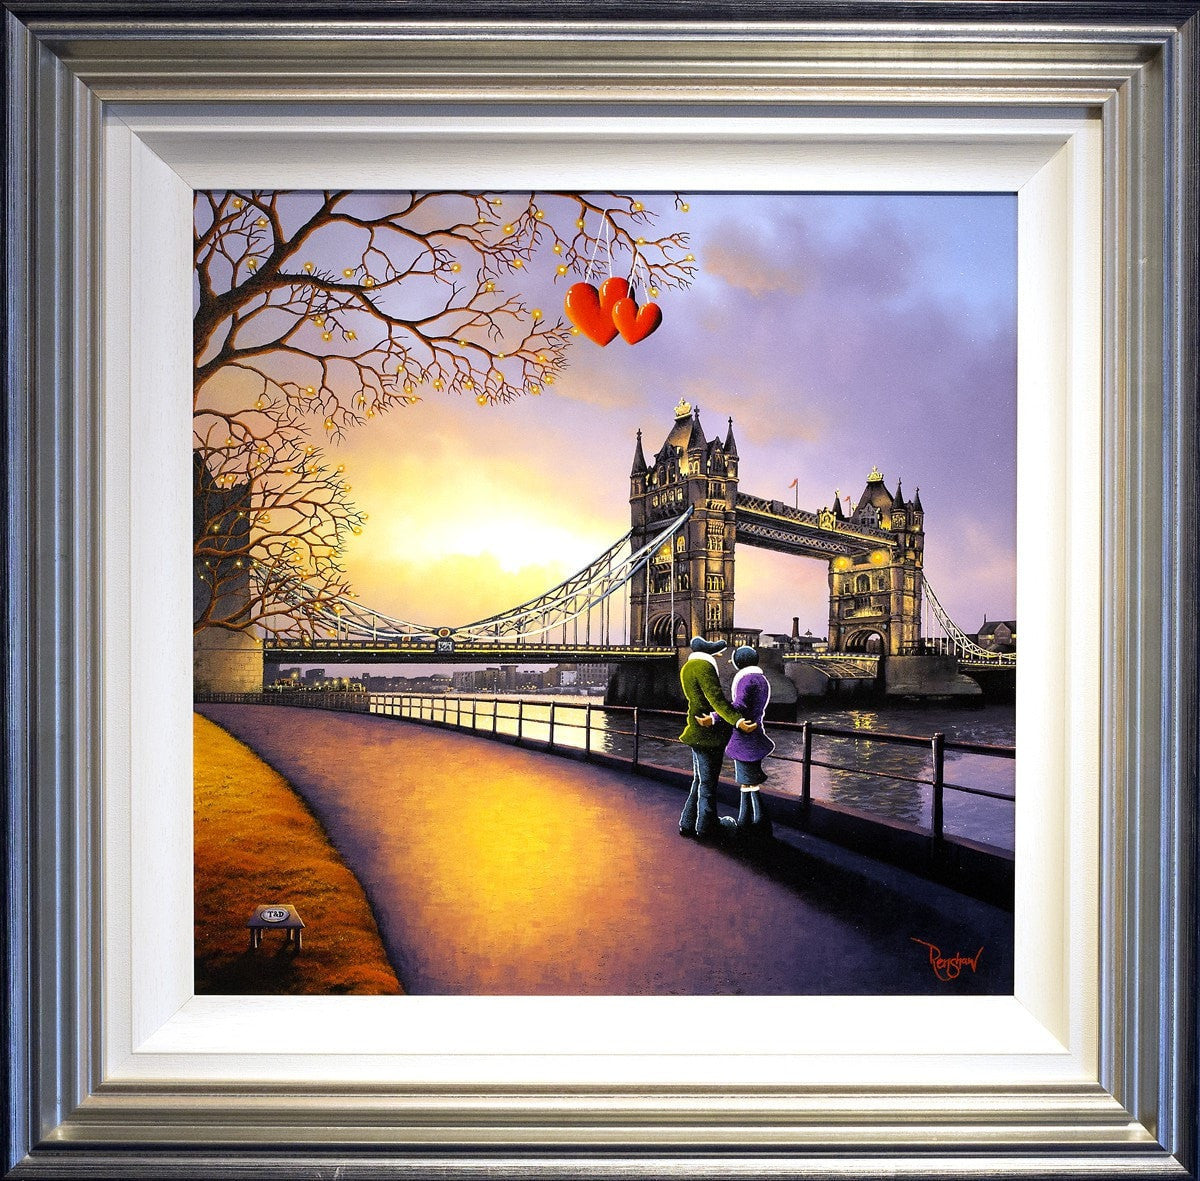 Heart of London - ORIGINAL - SOLD David Renshaw